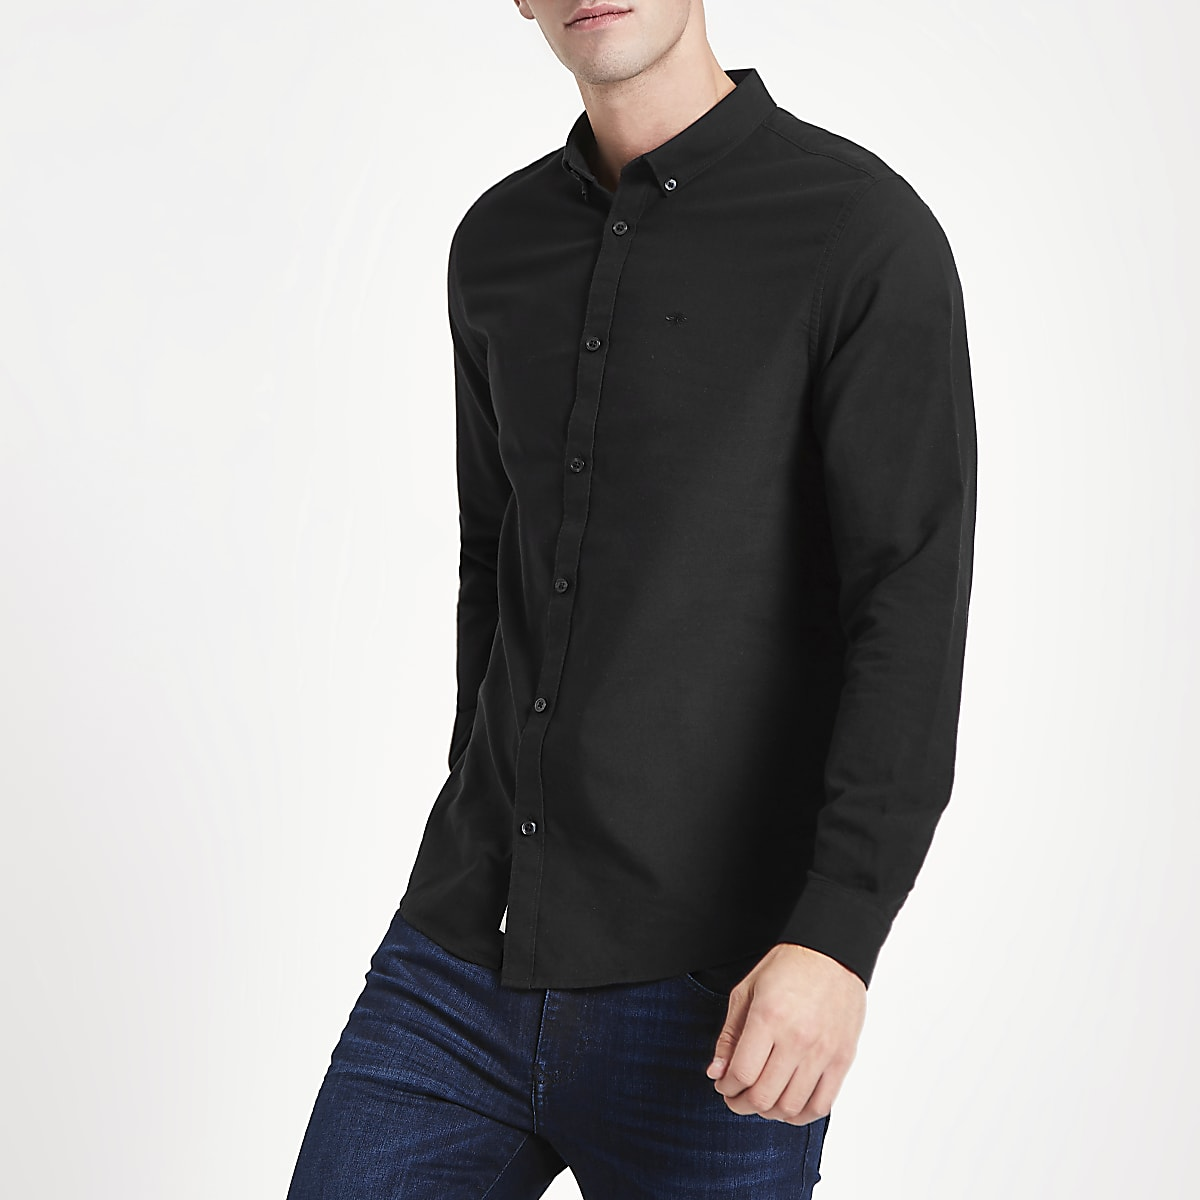 Black wasp embroidered Oxford shirt